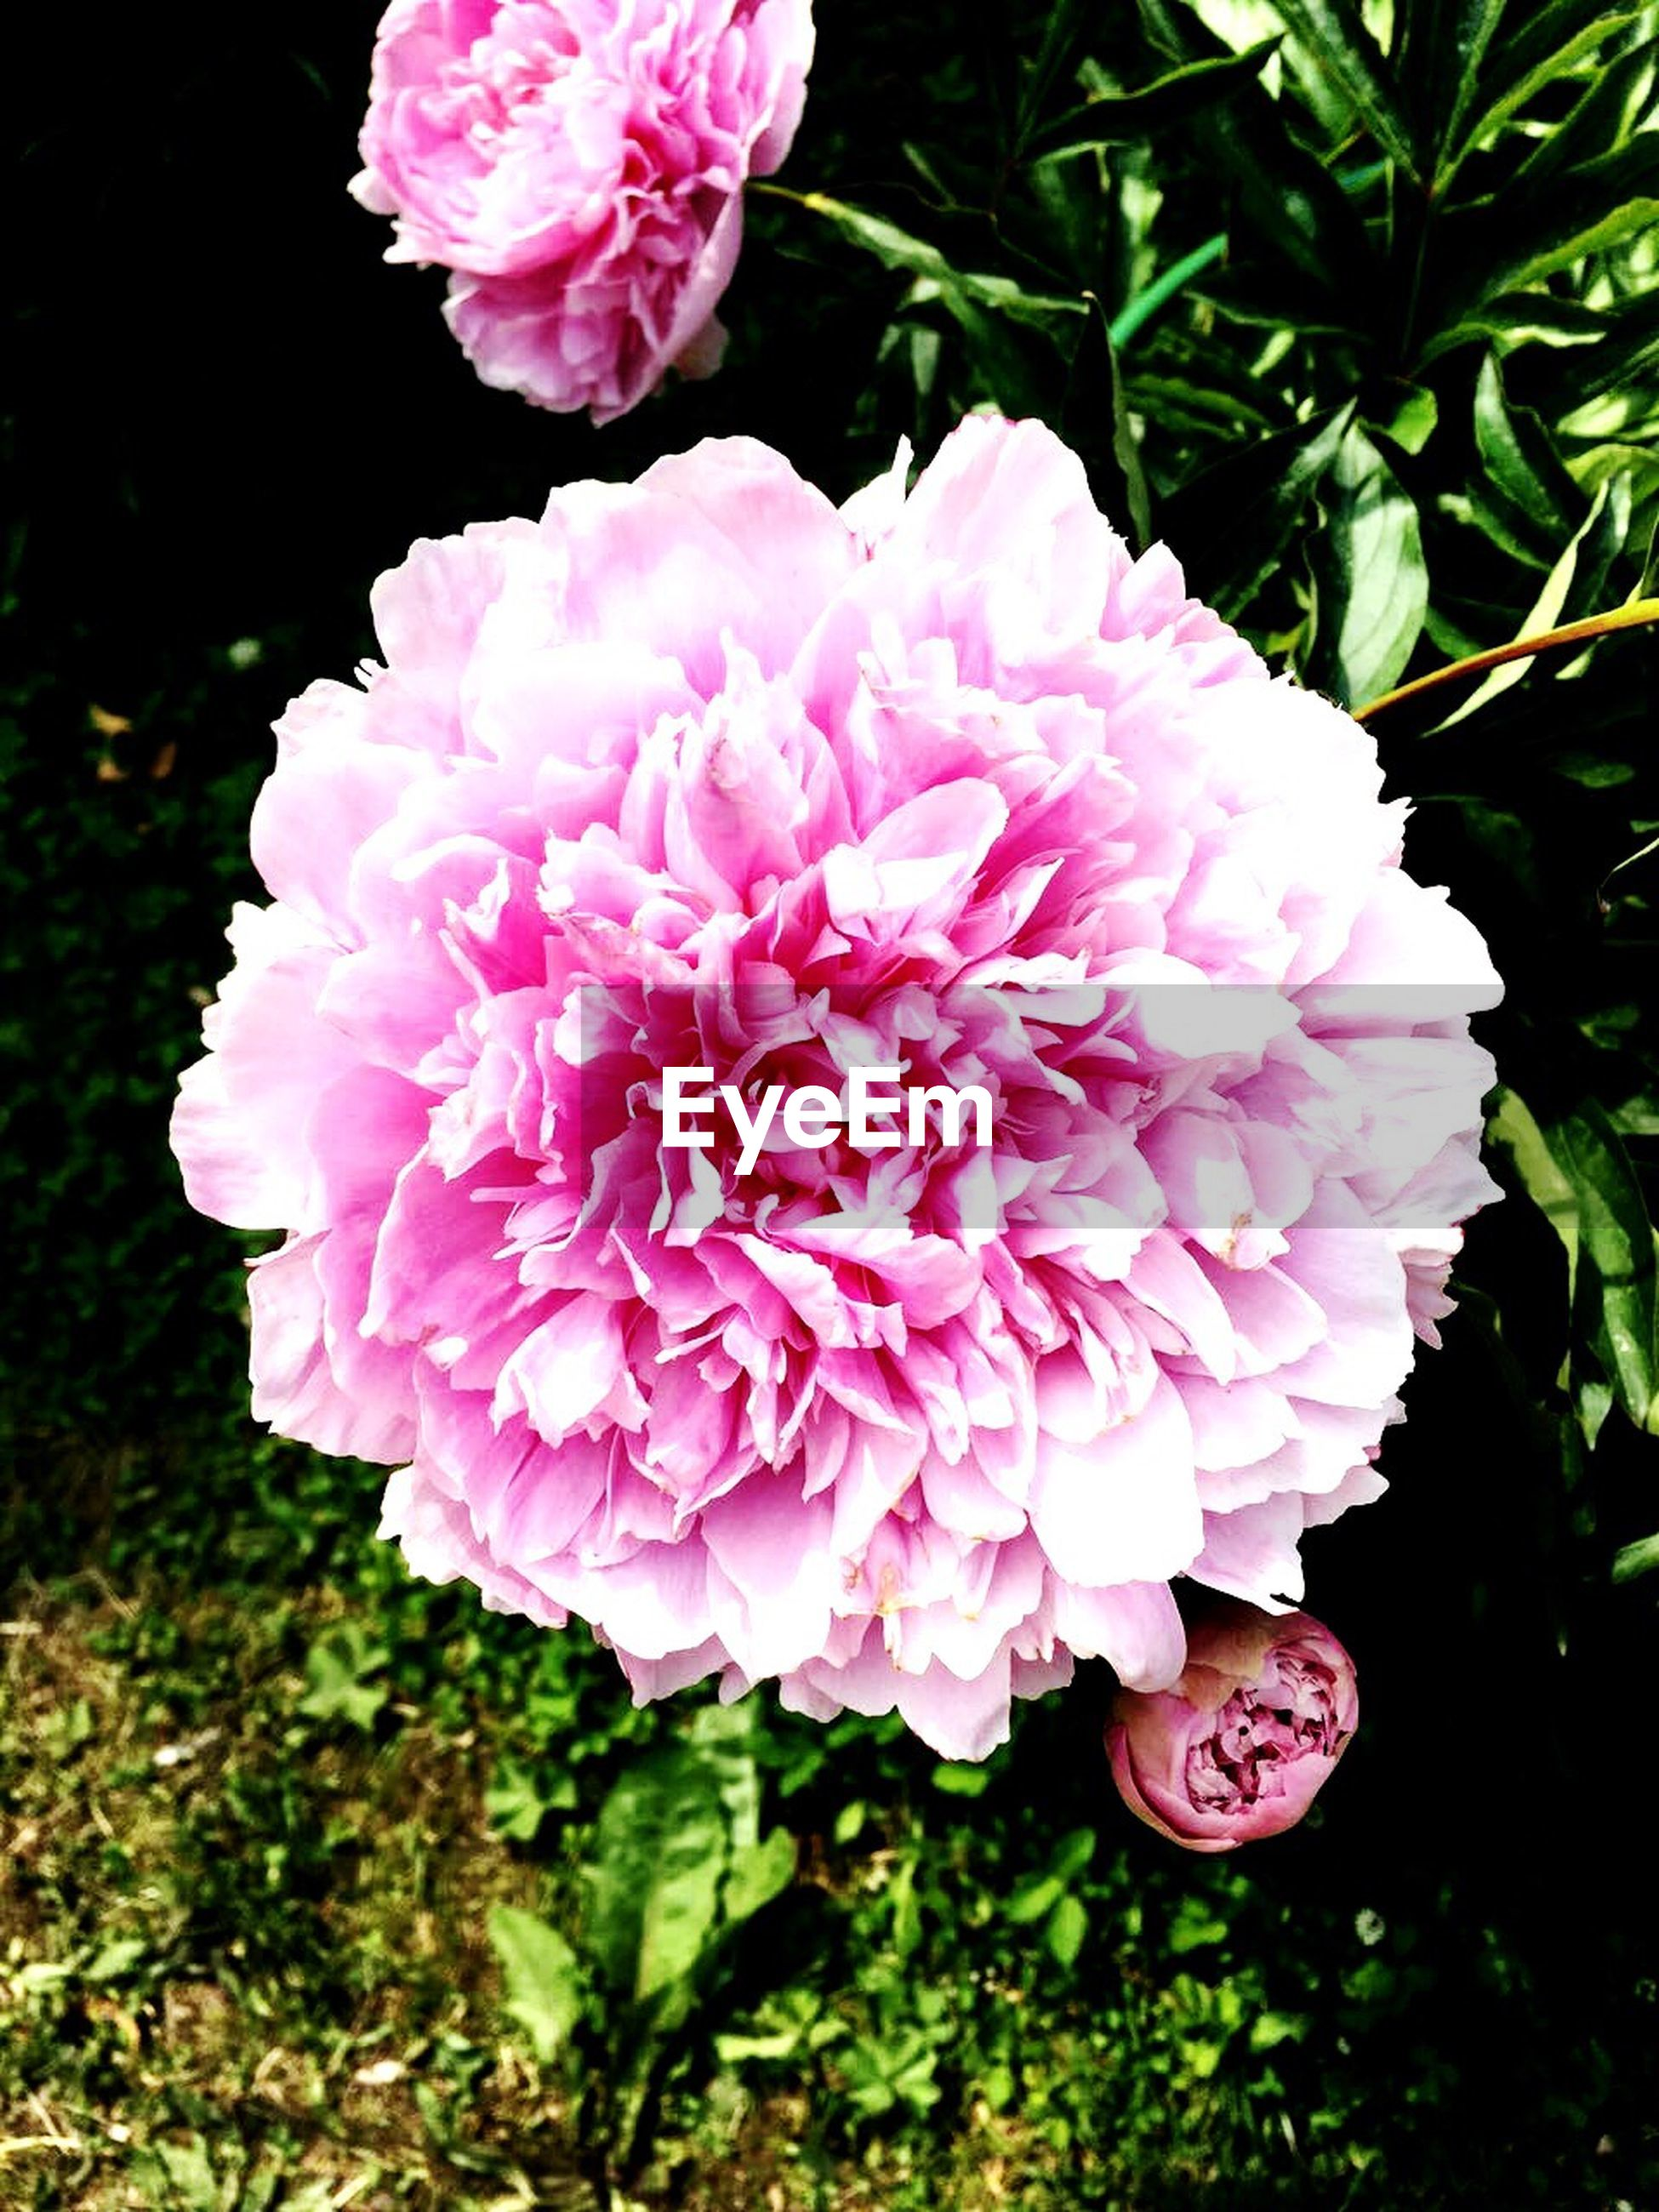 flower, petal, freshness, fragility, flower head, pink color, growth, beauty in nature, close-up, blooming, nature, plant, in bloom, high angle view, pink, park - man made space, focus on foreground, blossom, no people, outdoors